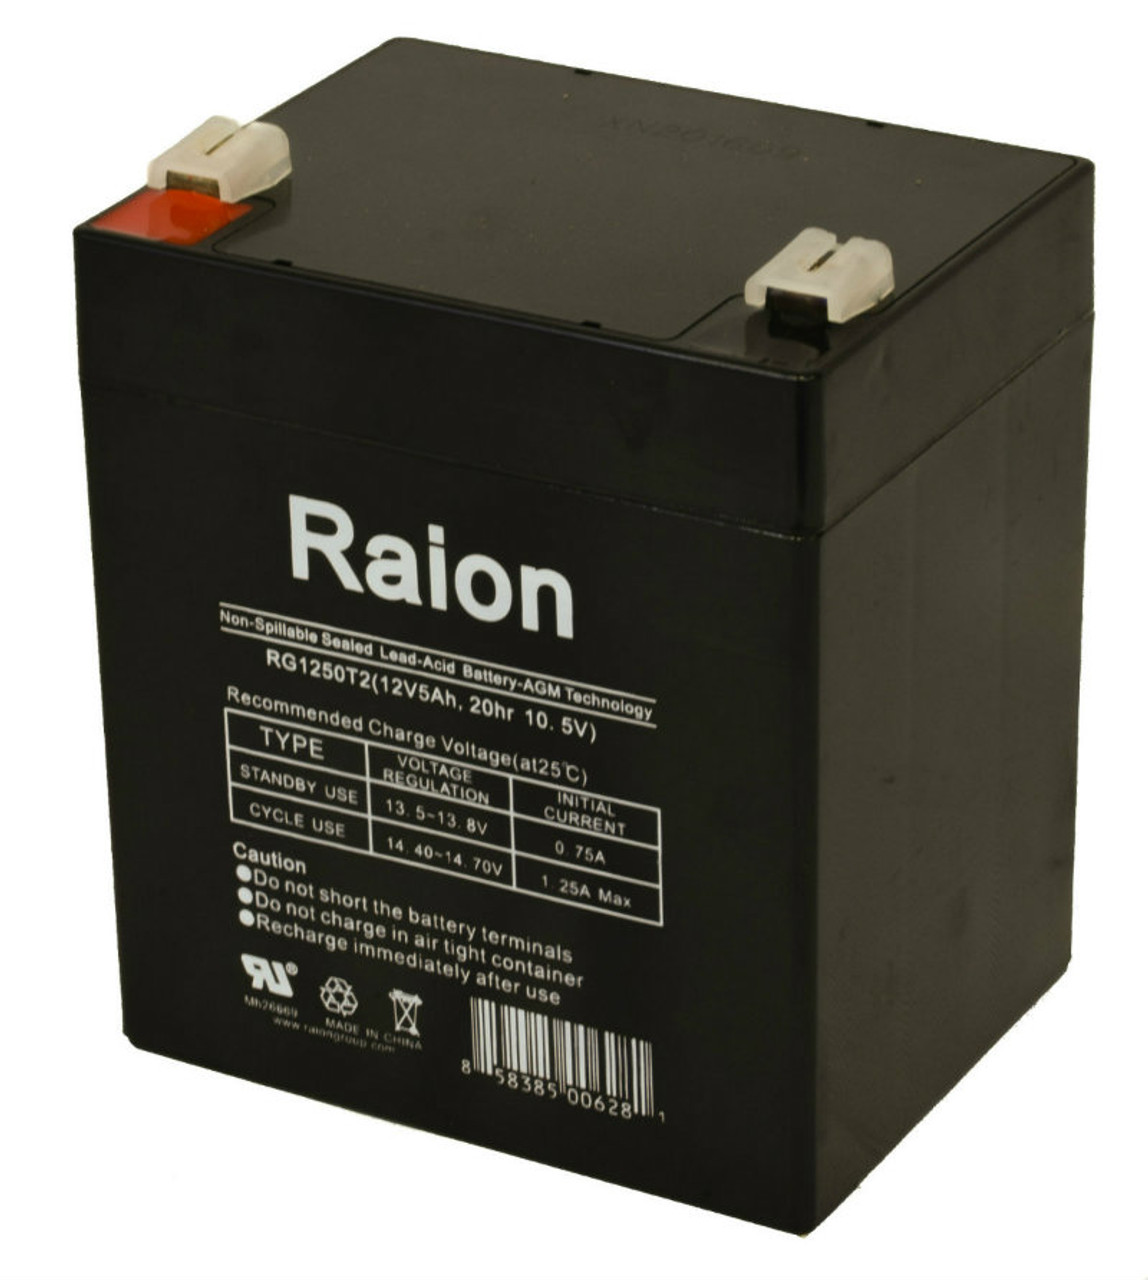 Raion Power RG1250T1 Replacement Battery for Mighty Max ML5-12